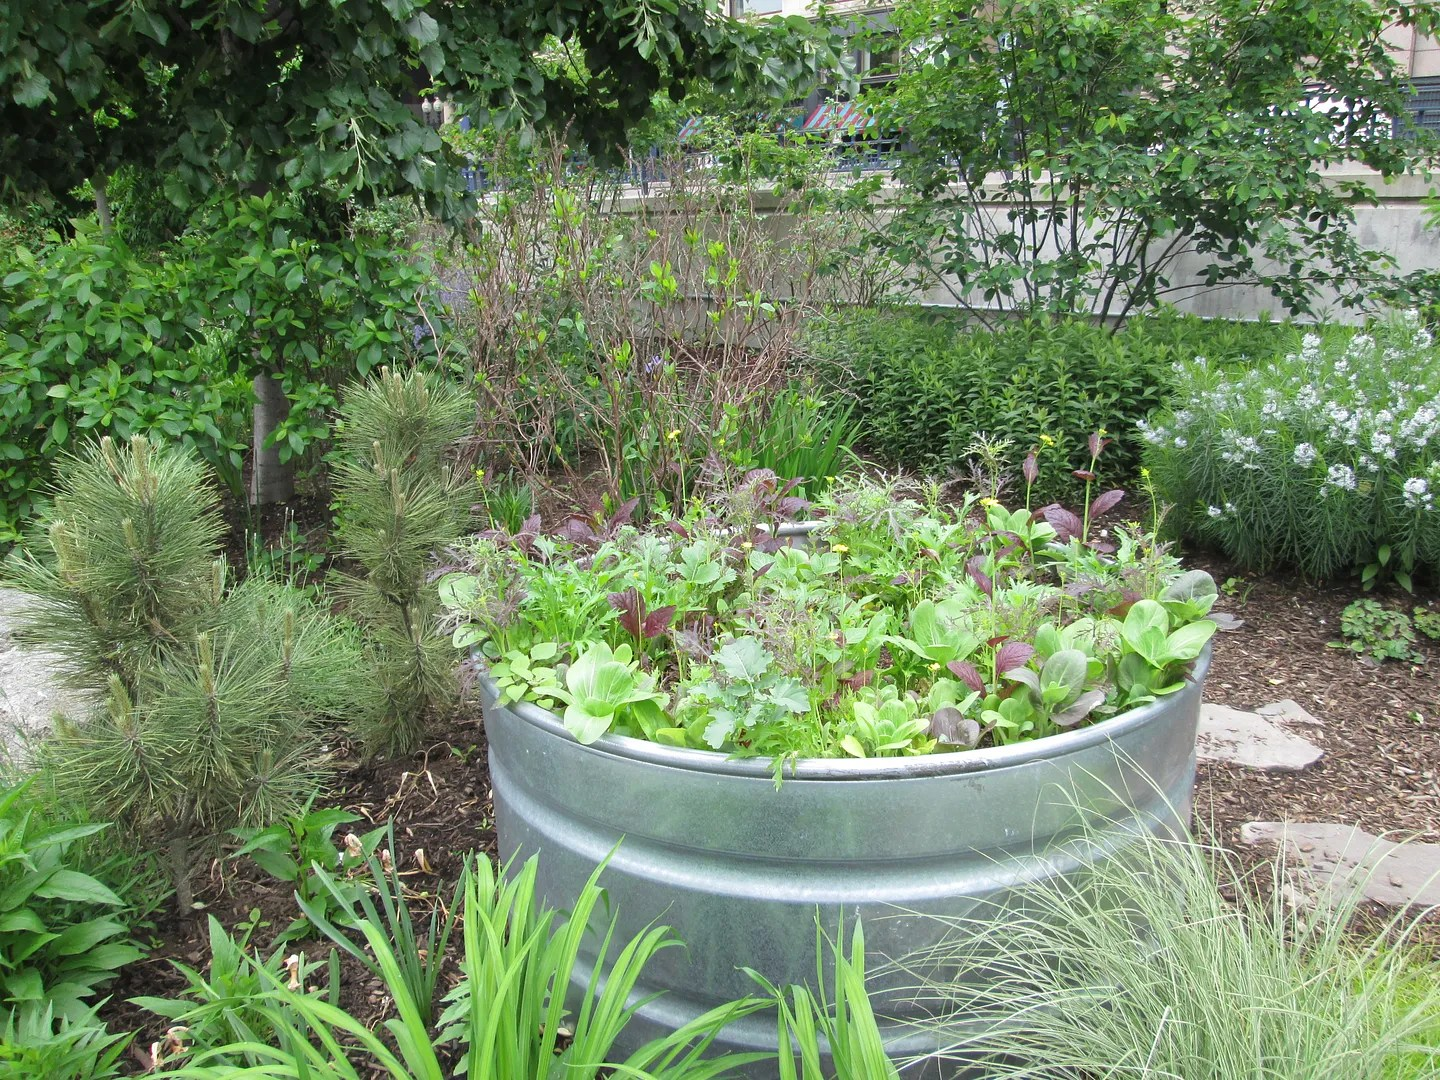 urban garden with veggies in a large metal bin